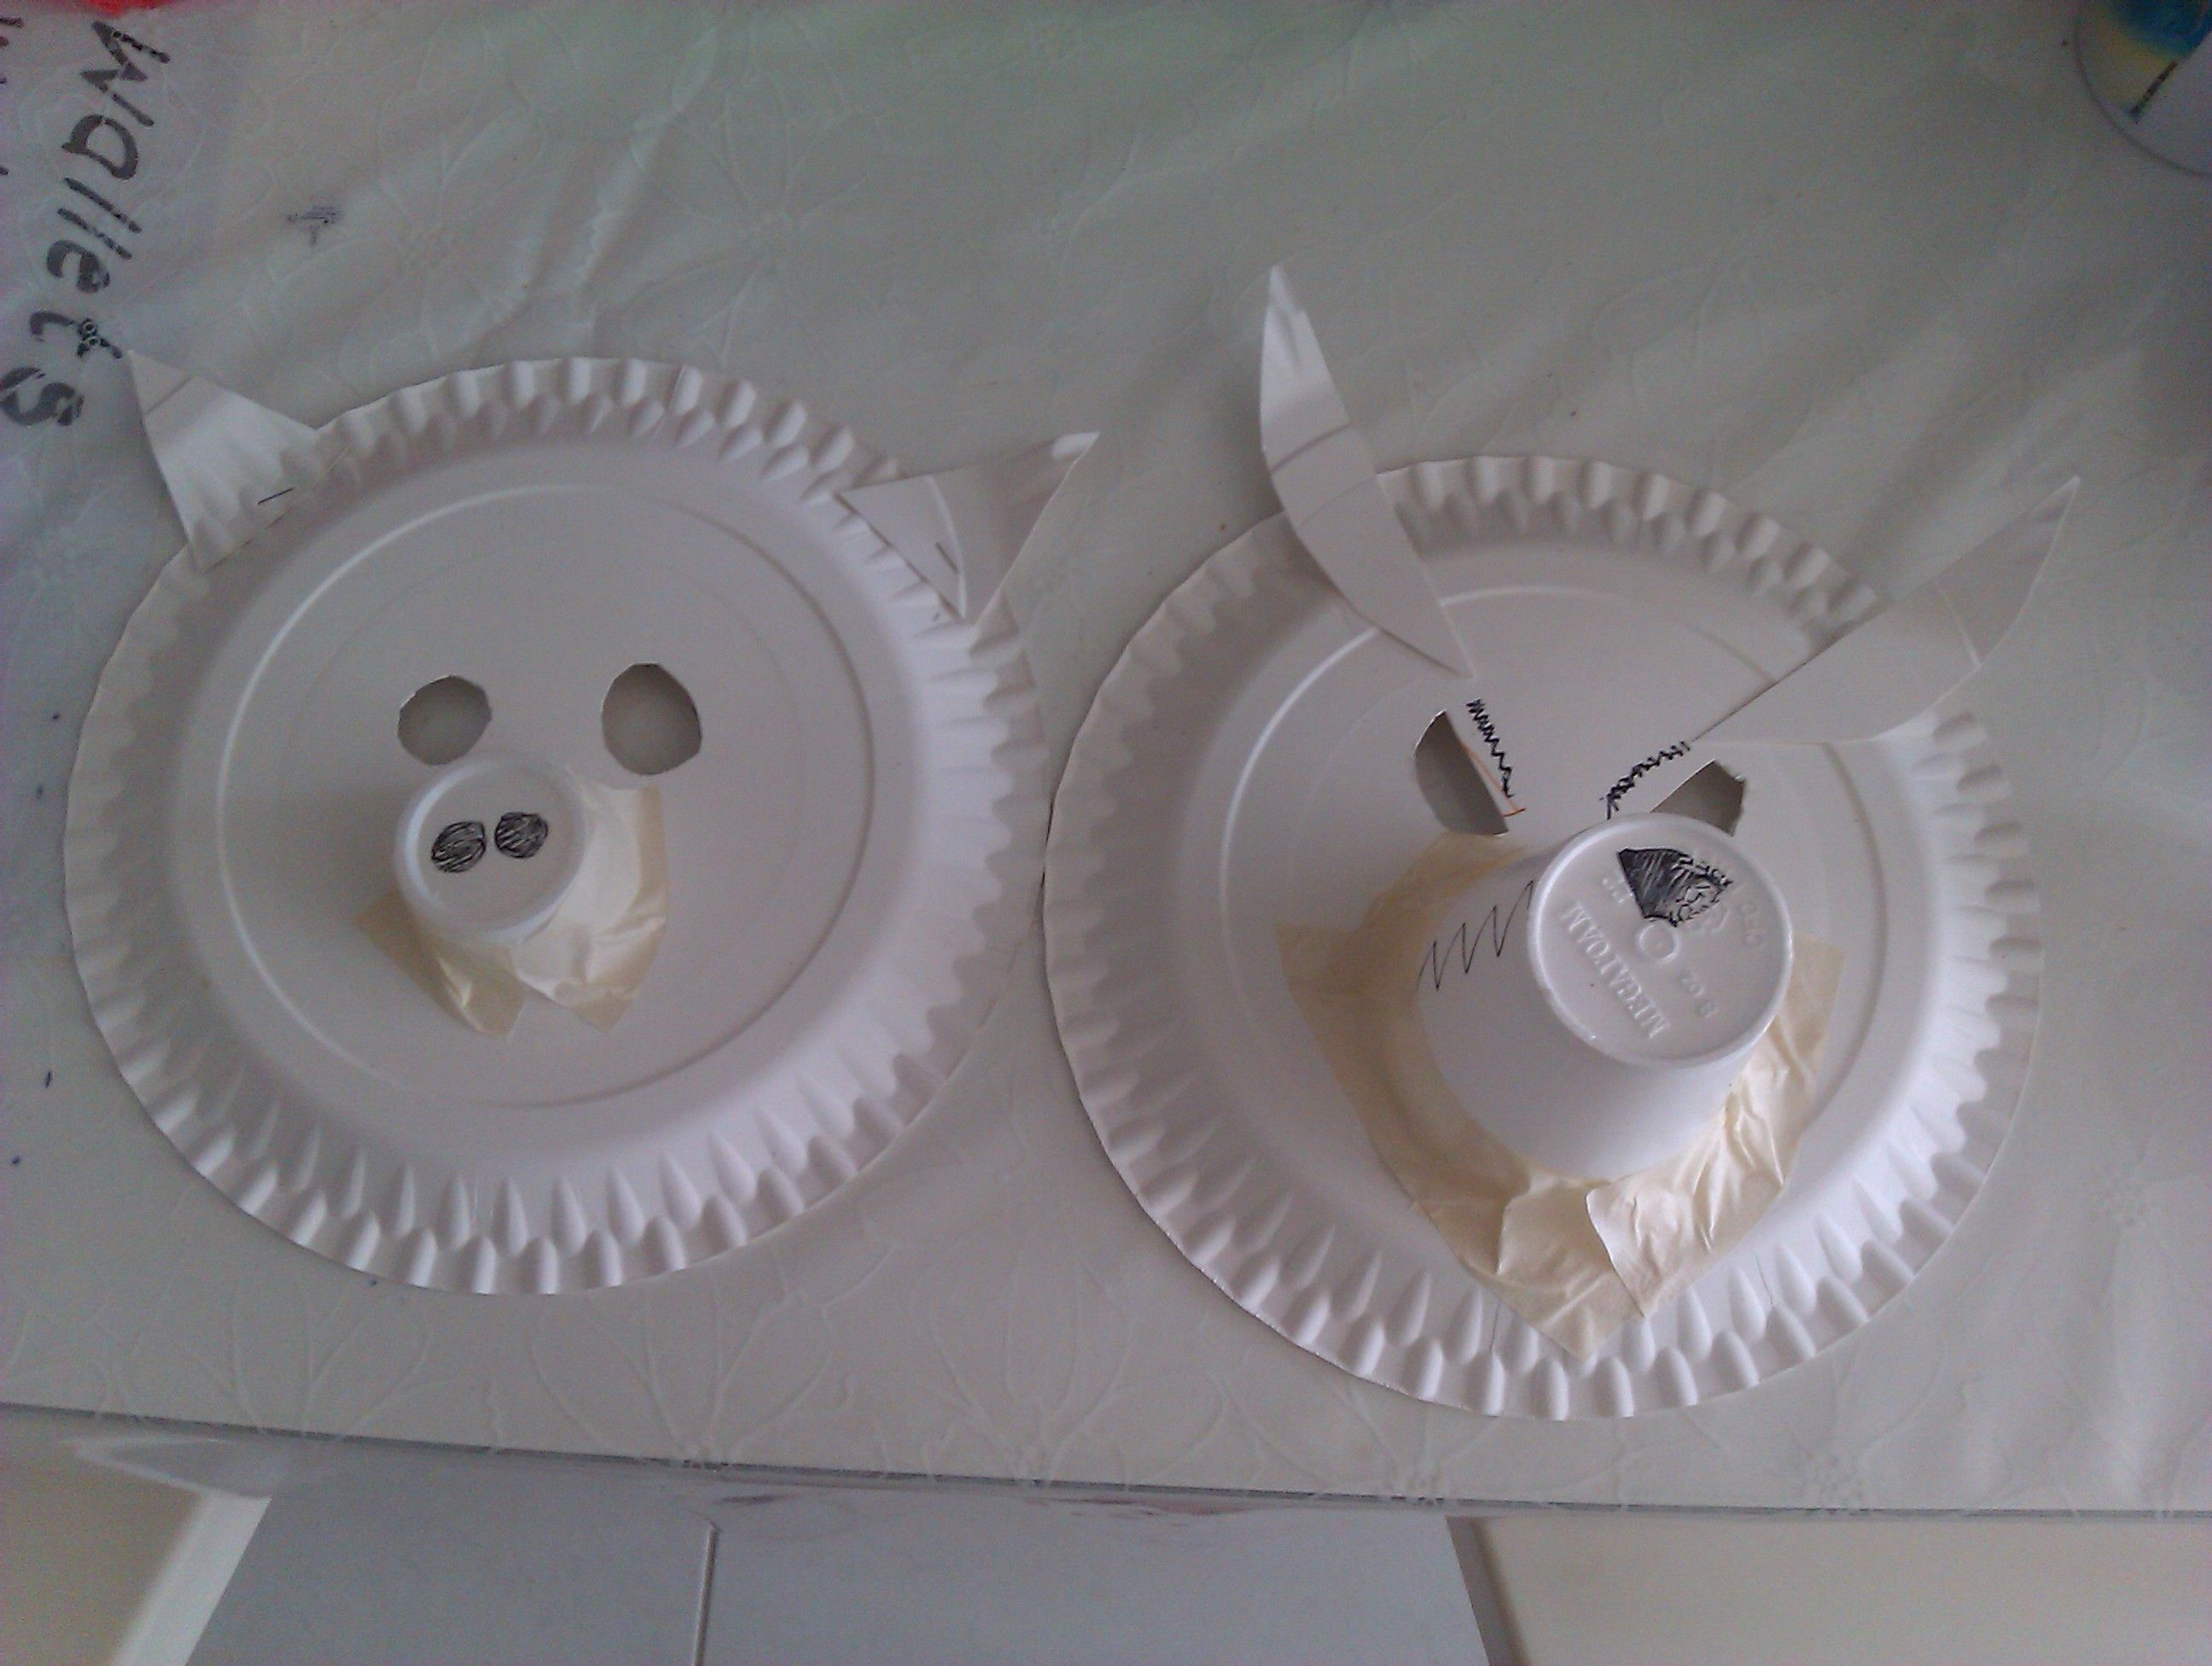 After We Paint This Paper Plate Masks, We'll Start Playing